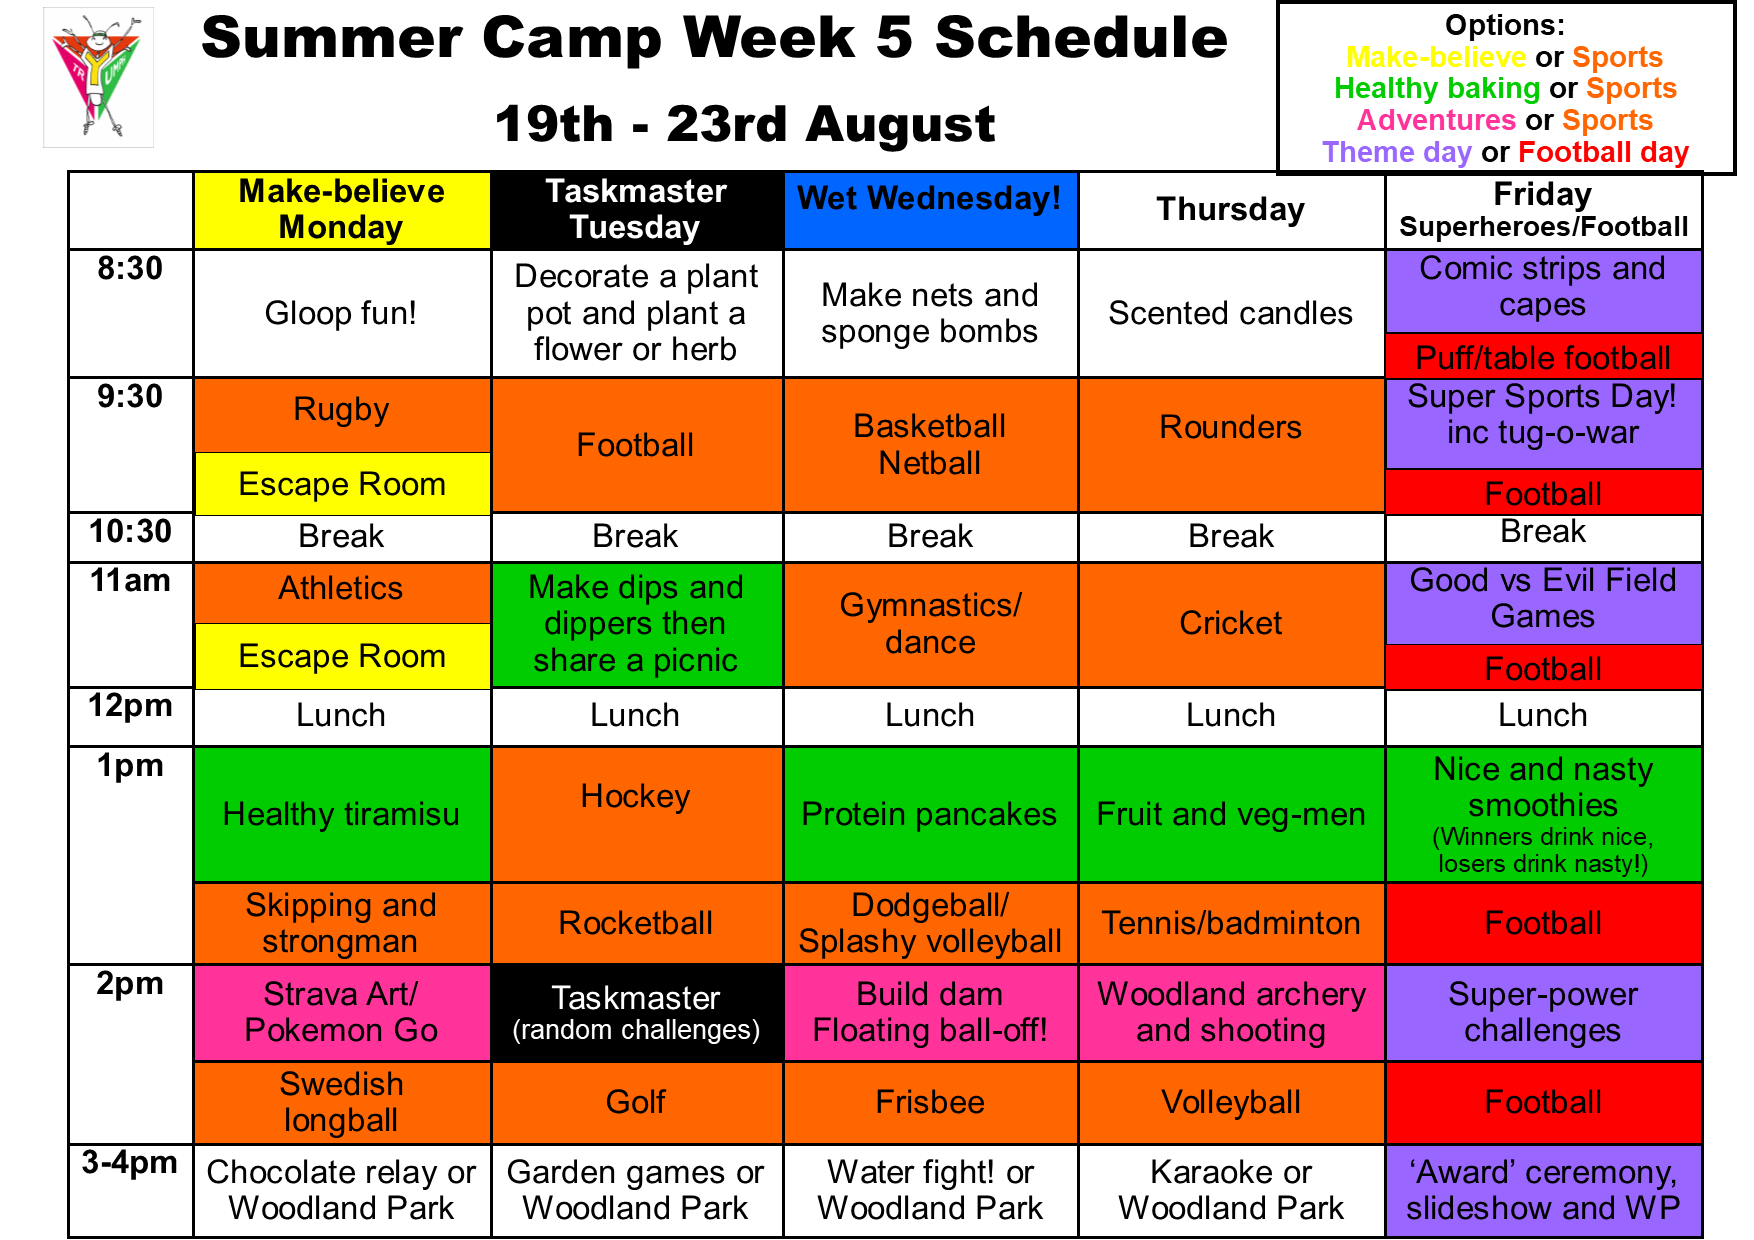 Summer camp week 5